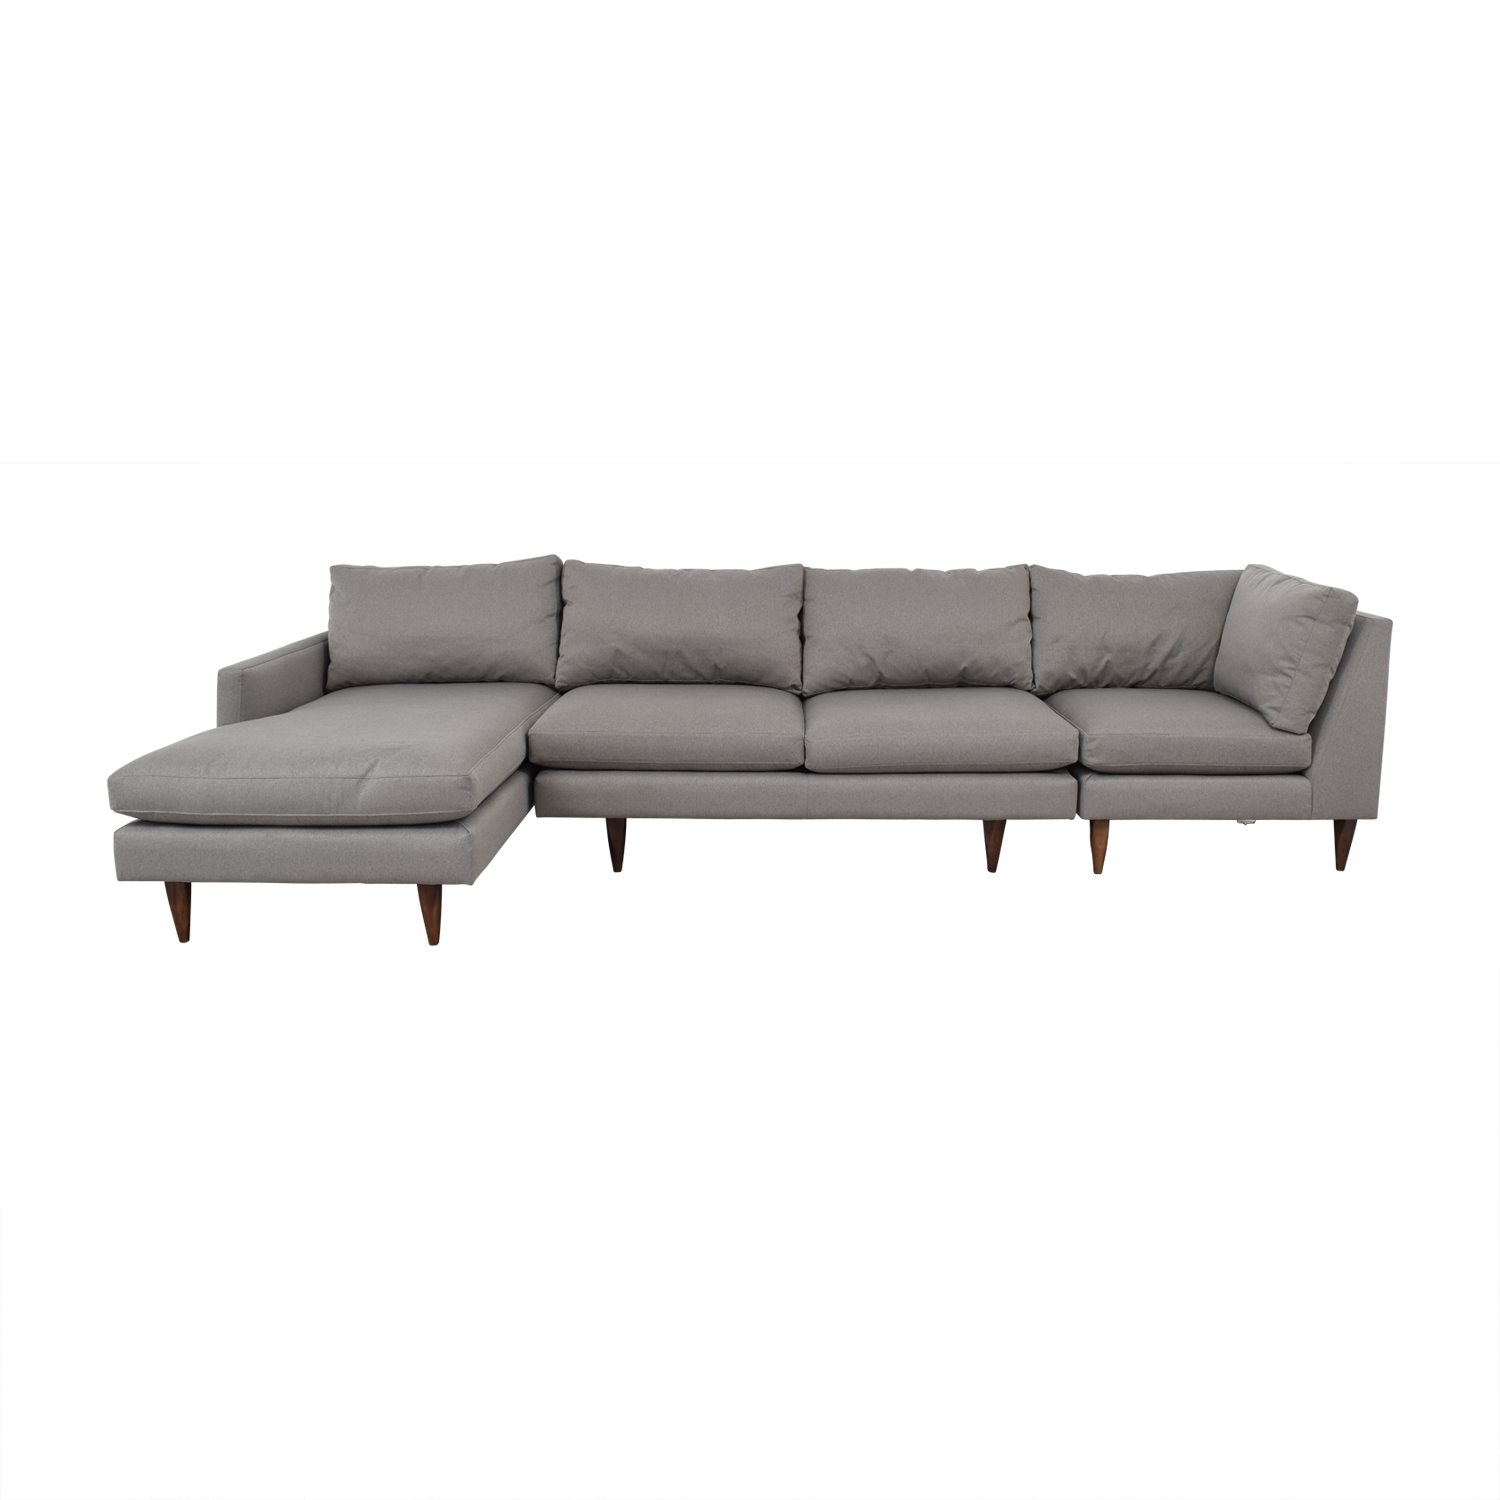 55 off room board room board jasper grey chaise sectional sofas